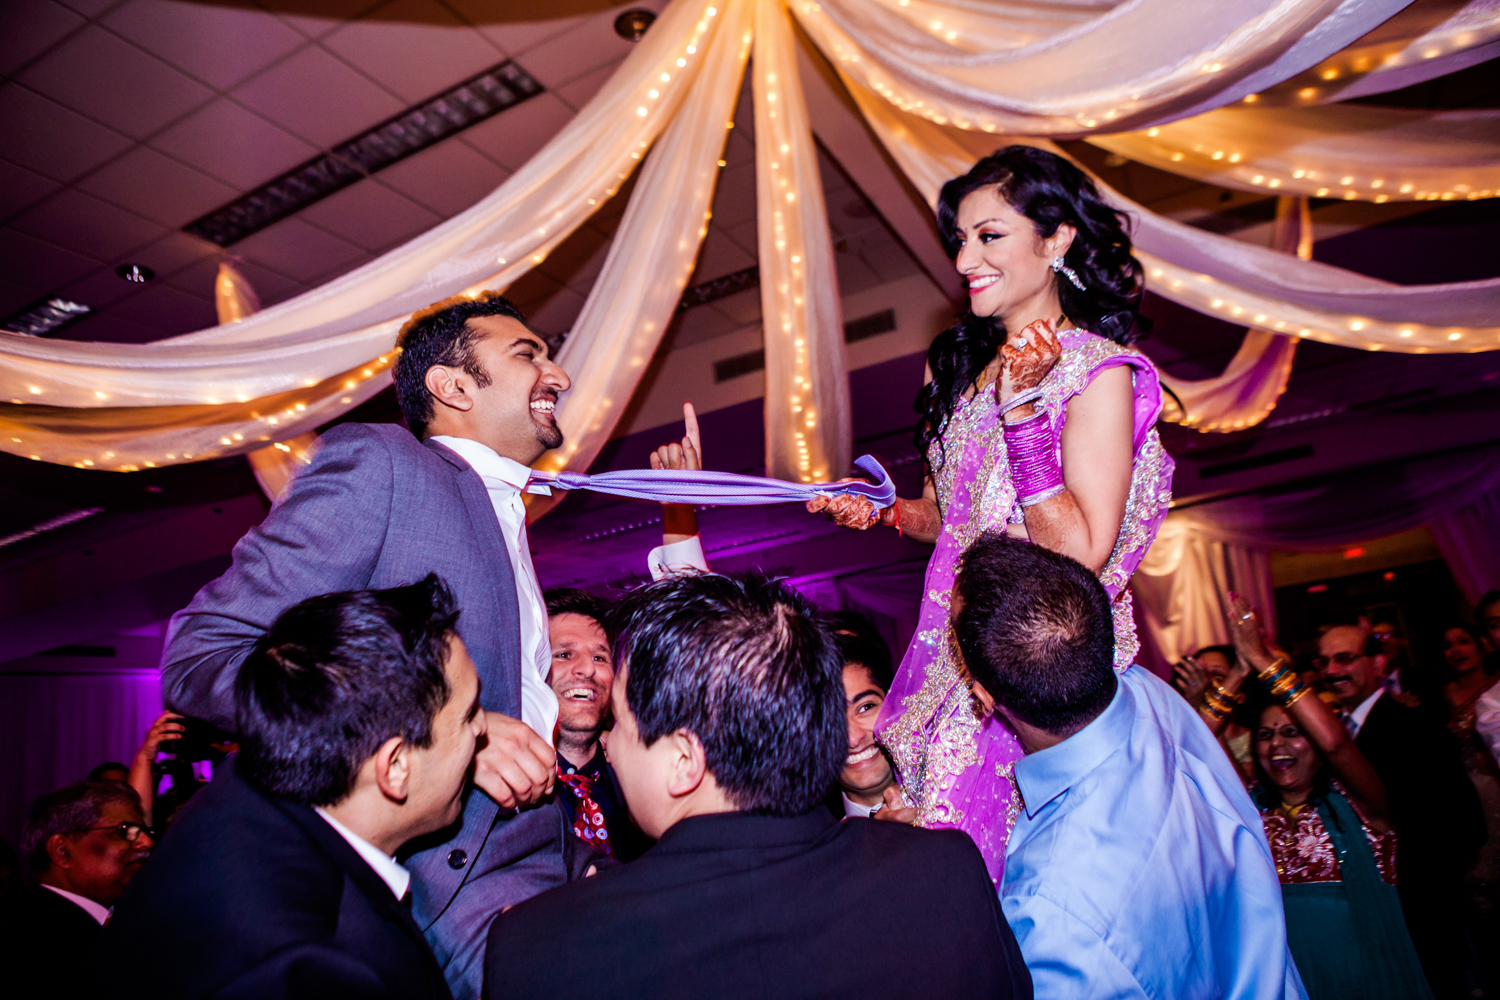 Rochester-Wedding-Photographer-Ulahannan-Wedding-1413.jpg